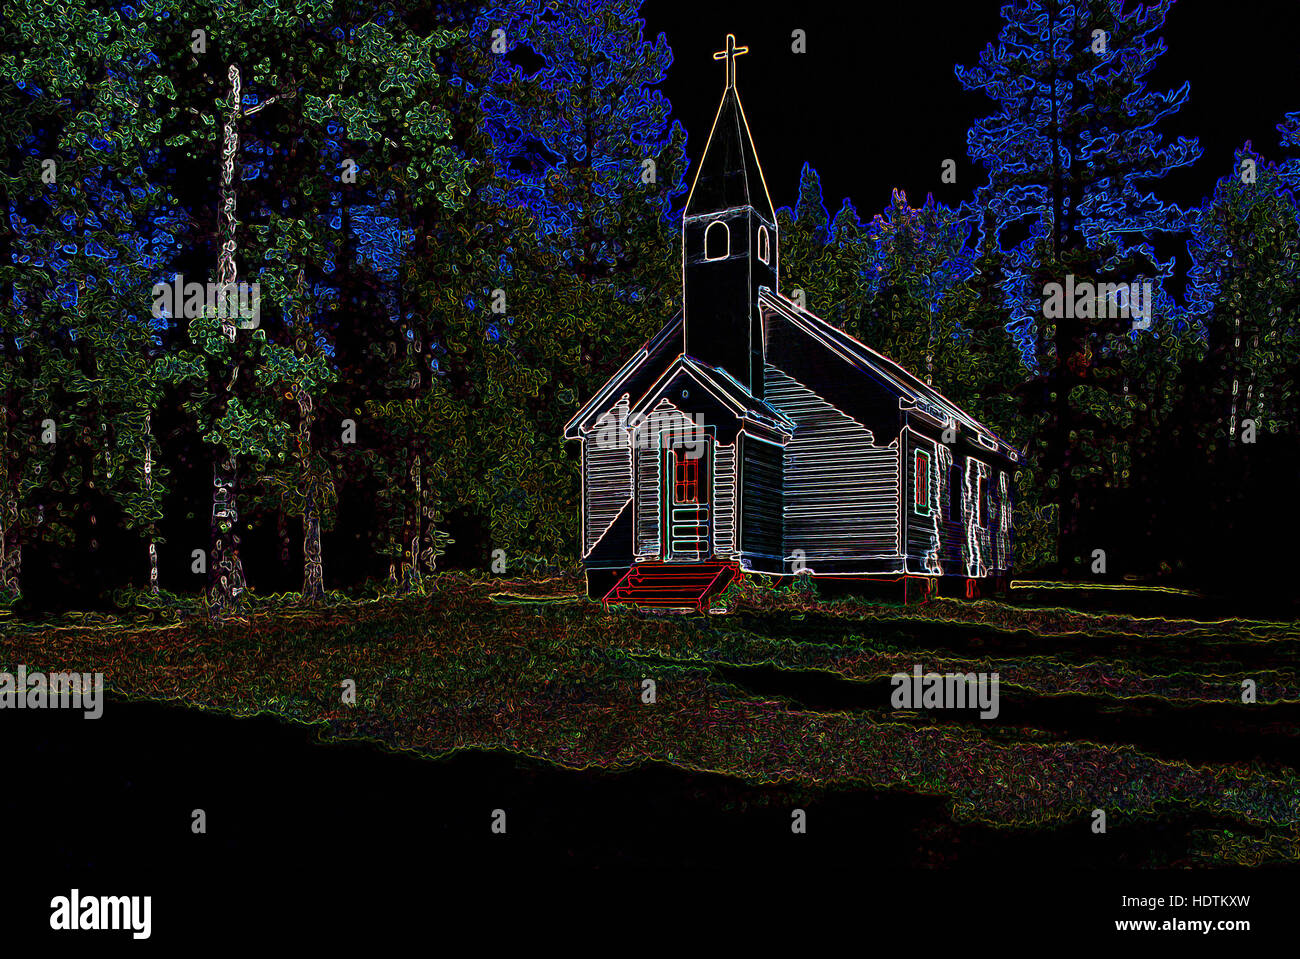 Small Wooden Rural Church - Digitally Manipulated Image with Glowing Edges, Abstract Architecture - Stock Image